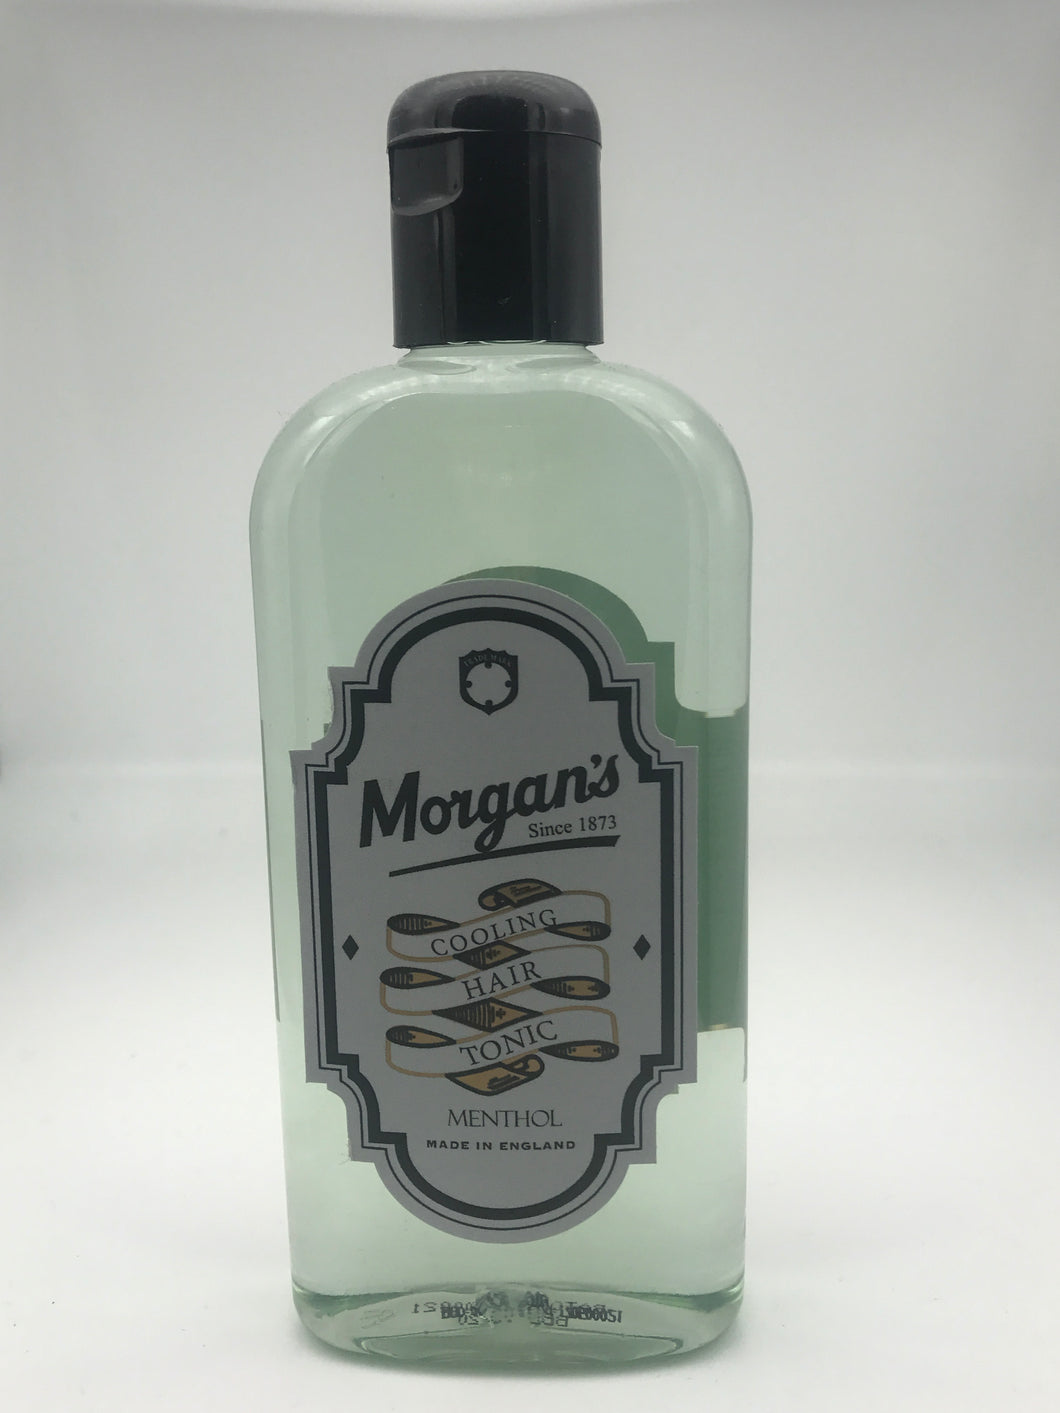 Morgan's Cooling Hair Tonic